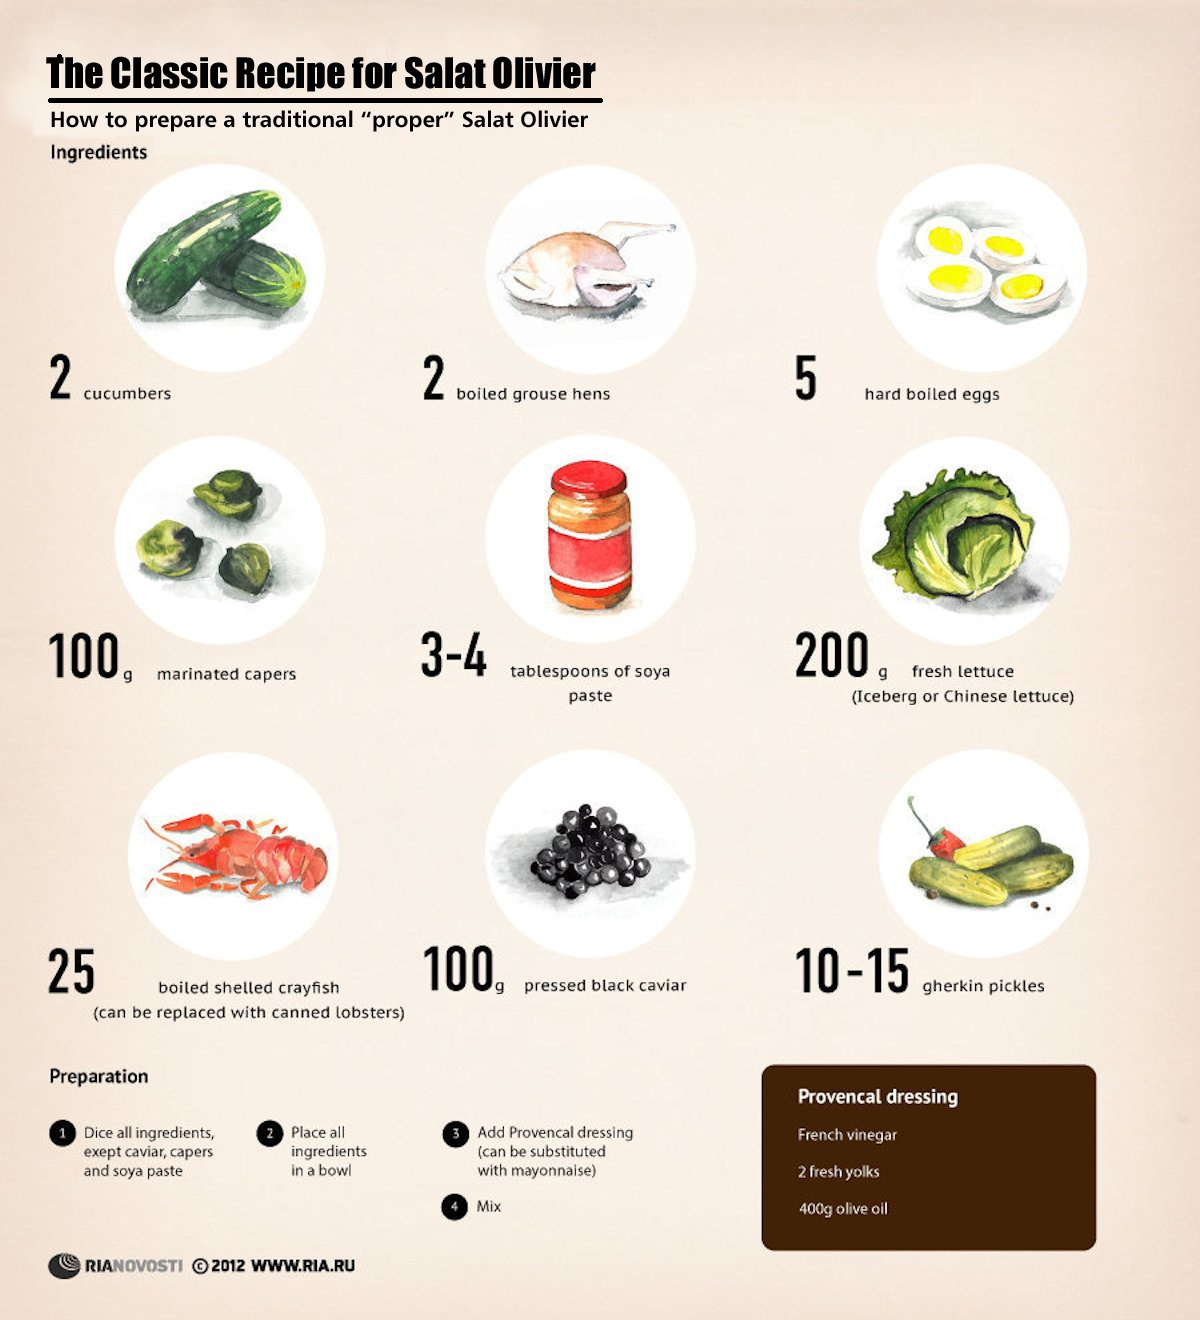 00 RIA-Novosti Infographics. The Classic Recipe for Salat Olivier. 2012